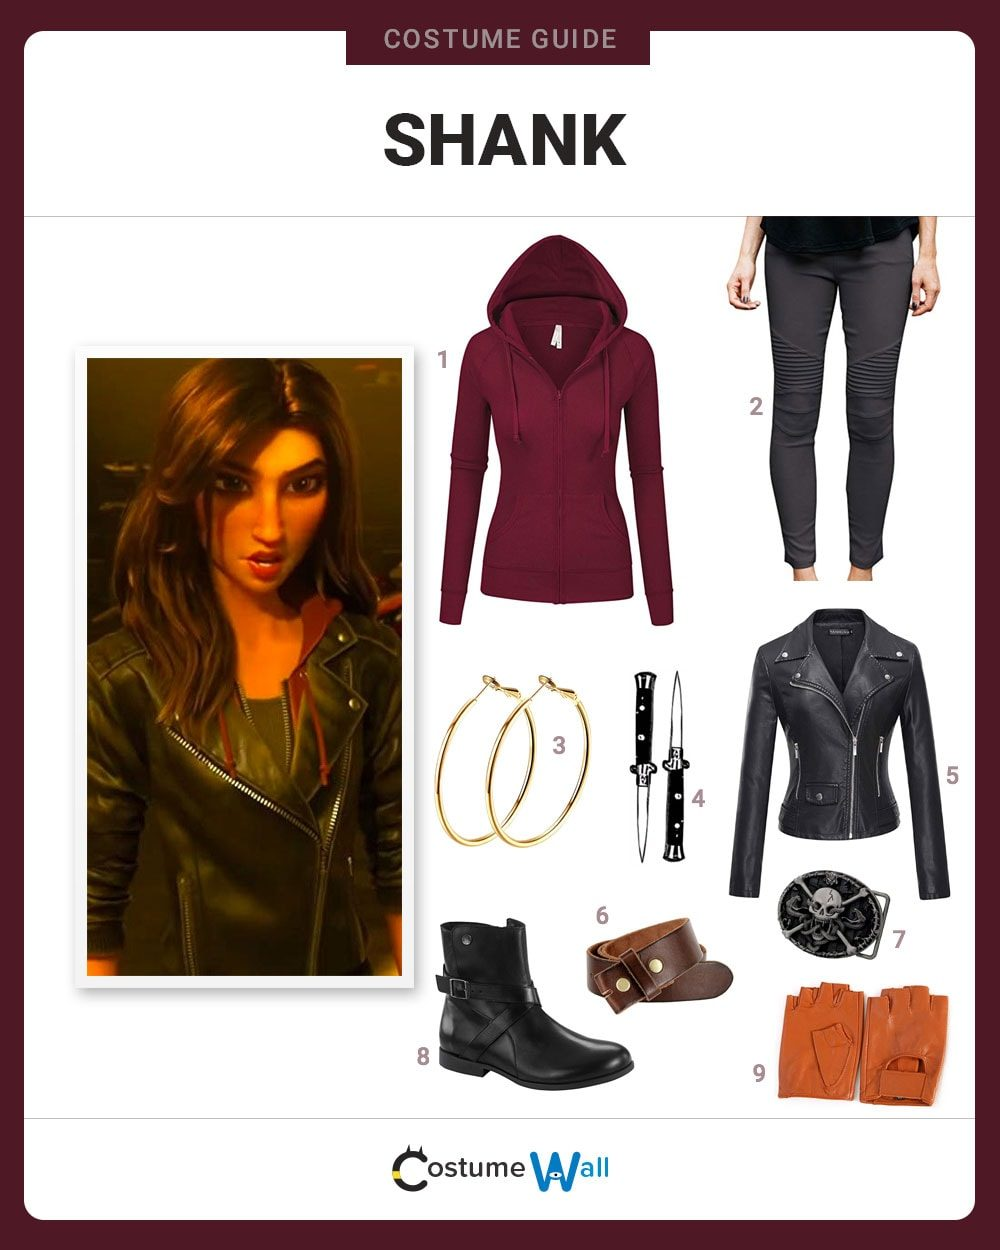 Shank Costume Guide